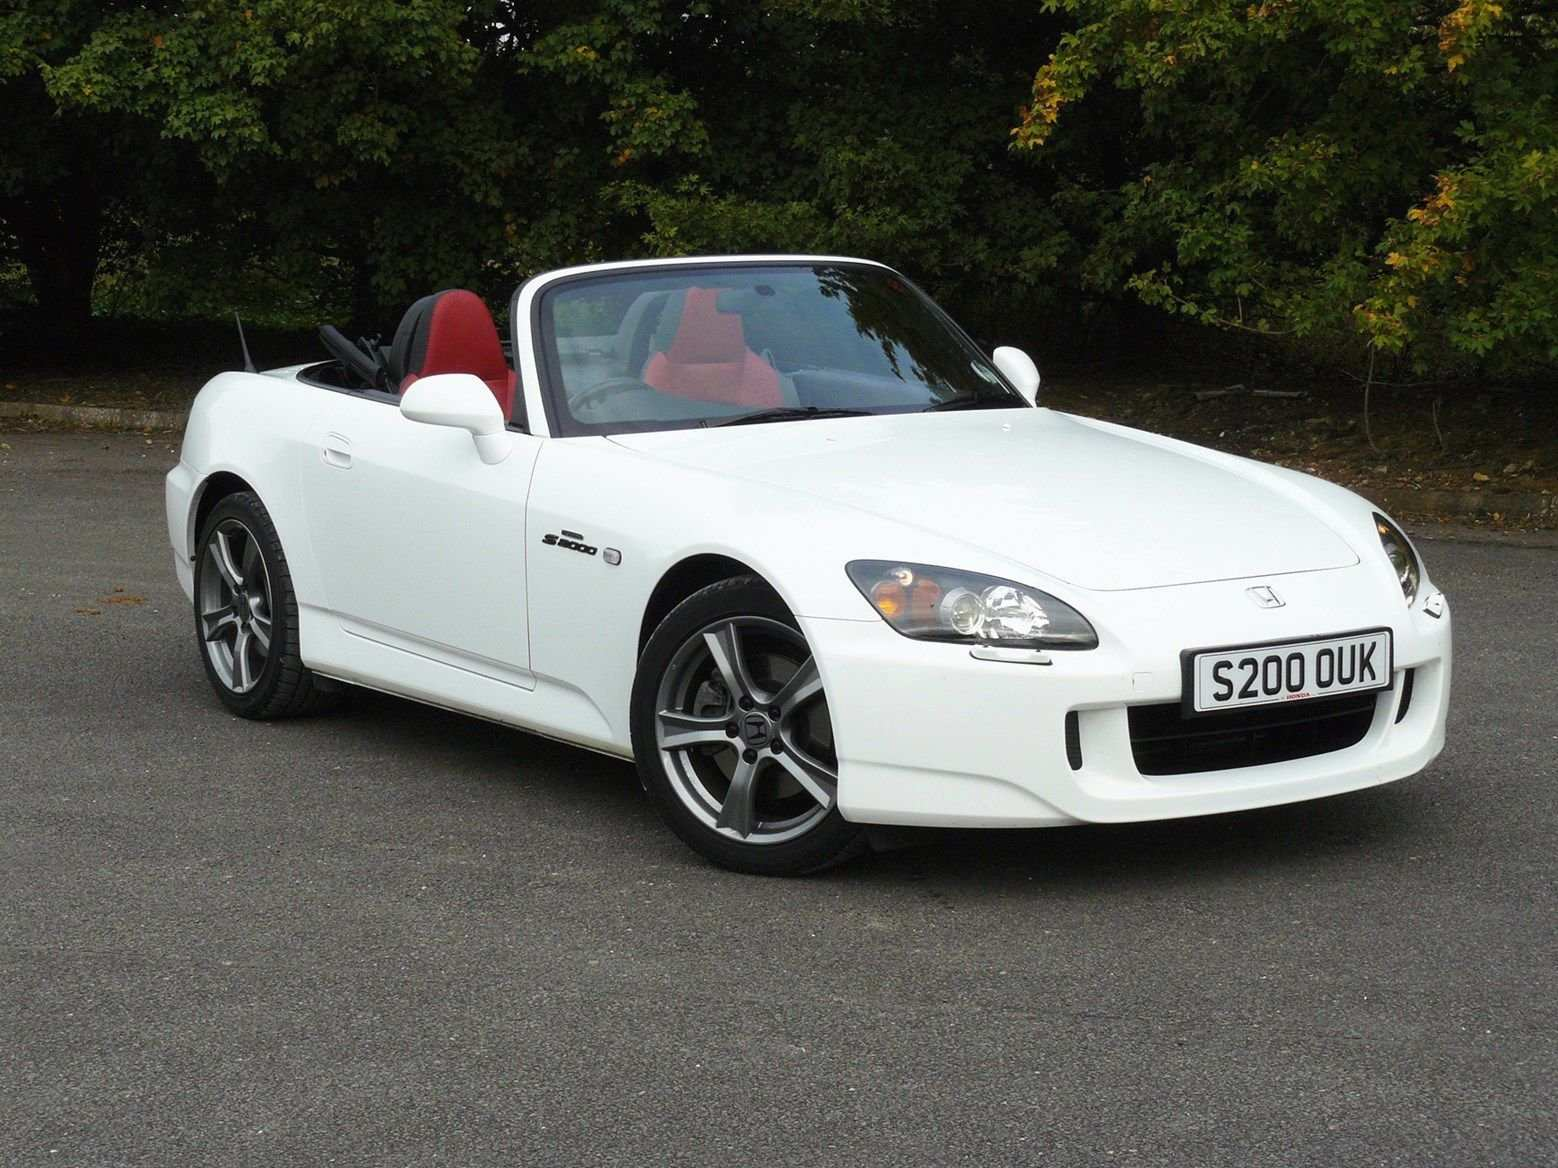 57 All New 2019 The Honda S2000 Picture